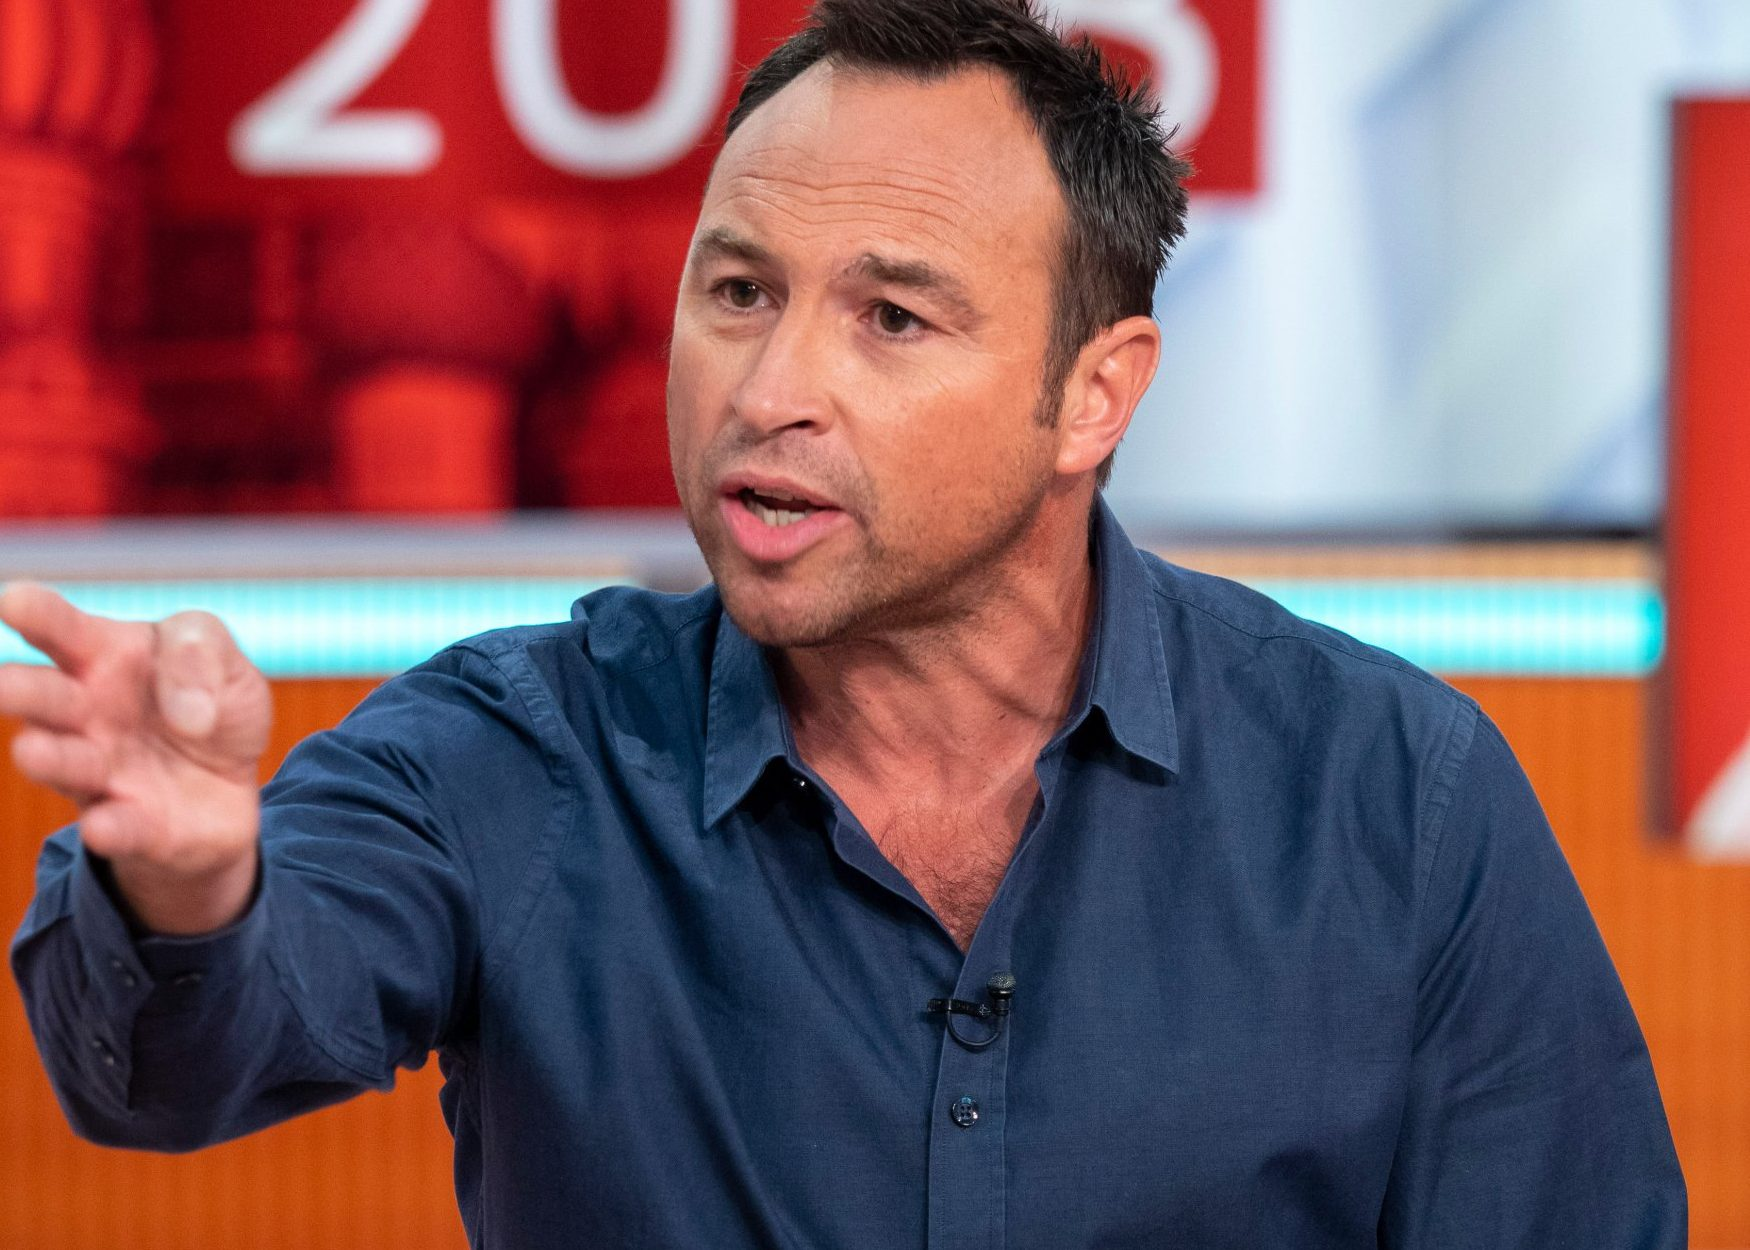 EDITORIAL USE ONLY. NO MERCHANDISING Mandatory Credit: Photo by Ken McKay/ITV/REX/Shutterstock (9726419dj) Jason Cundy 'Good Morning Britain' TV show, London, UK - 25 Jun 2018 SHOULD WOMEN COMMENTATE ON MALE FOOTBALL GAMES? The controversial debate: should women commentate on male football games? As Vicki Sparks commentated on the Portugal vs Morocco live on BBC One, John Terry initially said he was turning his TV down so he couldn't hear her. Now he has said it was in fact because the sound on his TV was broken. But some fans agreed with the former England Captain. GFX: John Terry tweet DESK: Jason Cundy (Agrees women shouldn't commentate on men's games) DESK: Lynsey Hooper (Football Broadcaster)